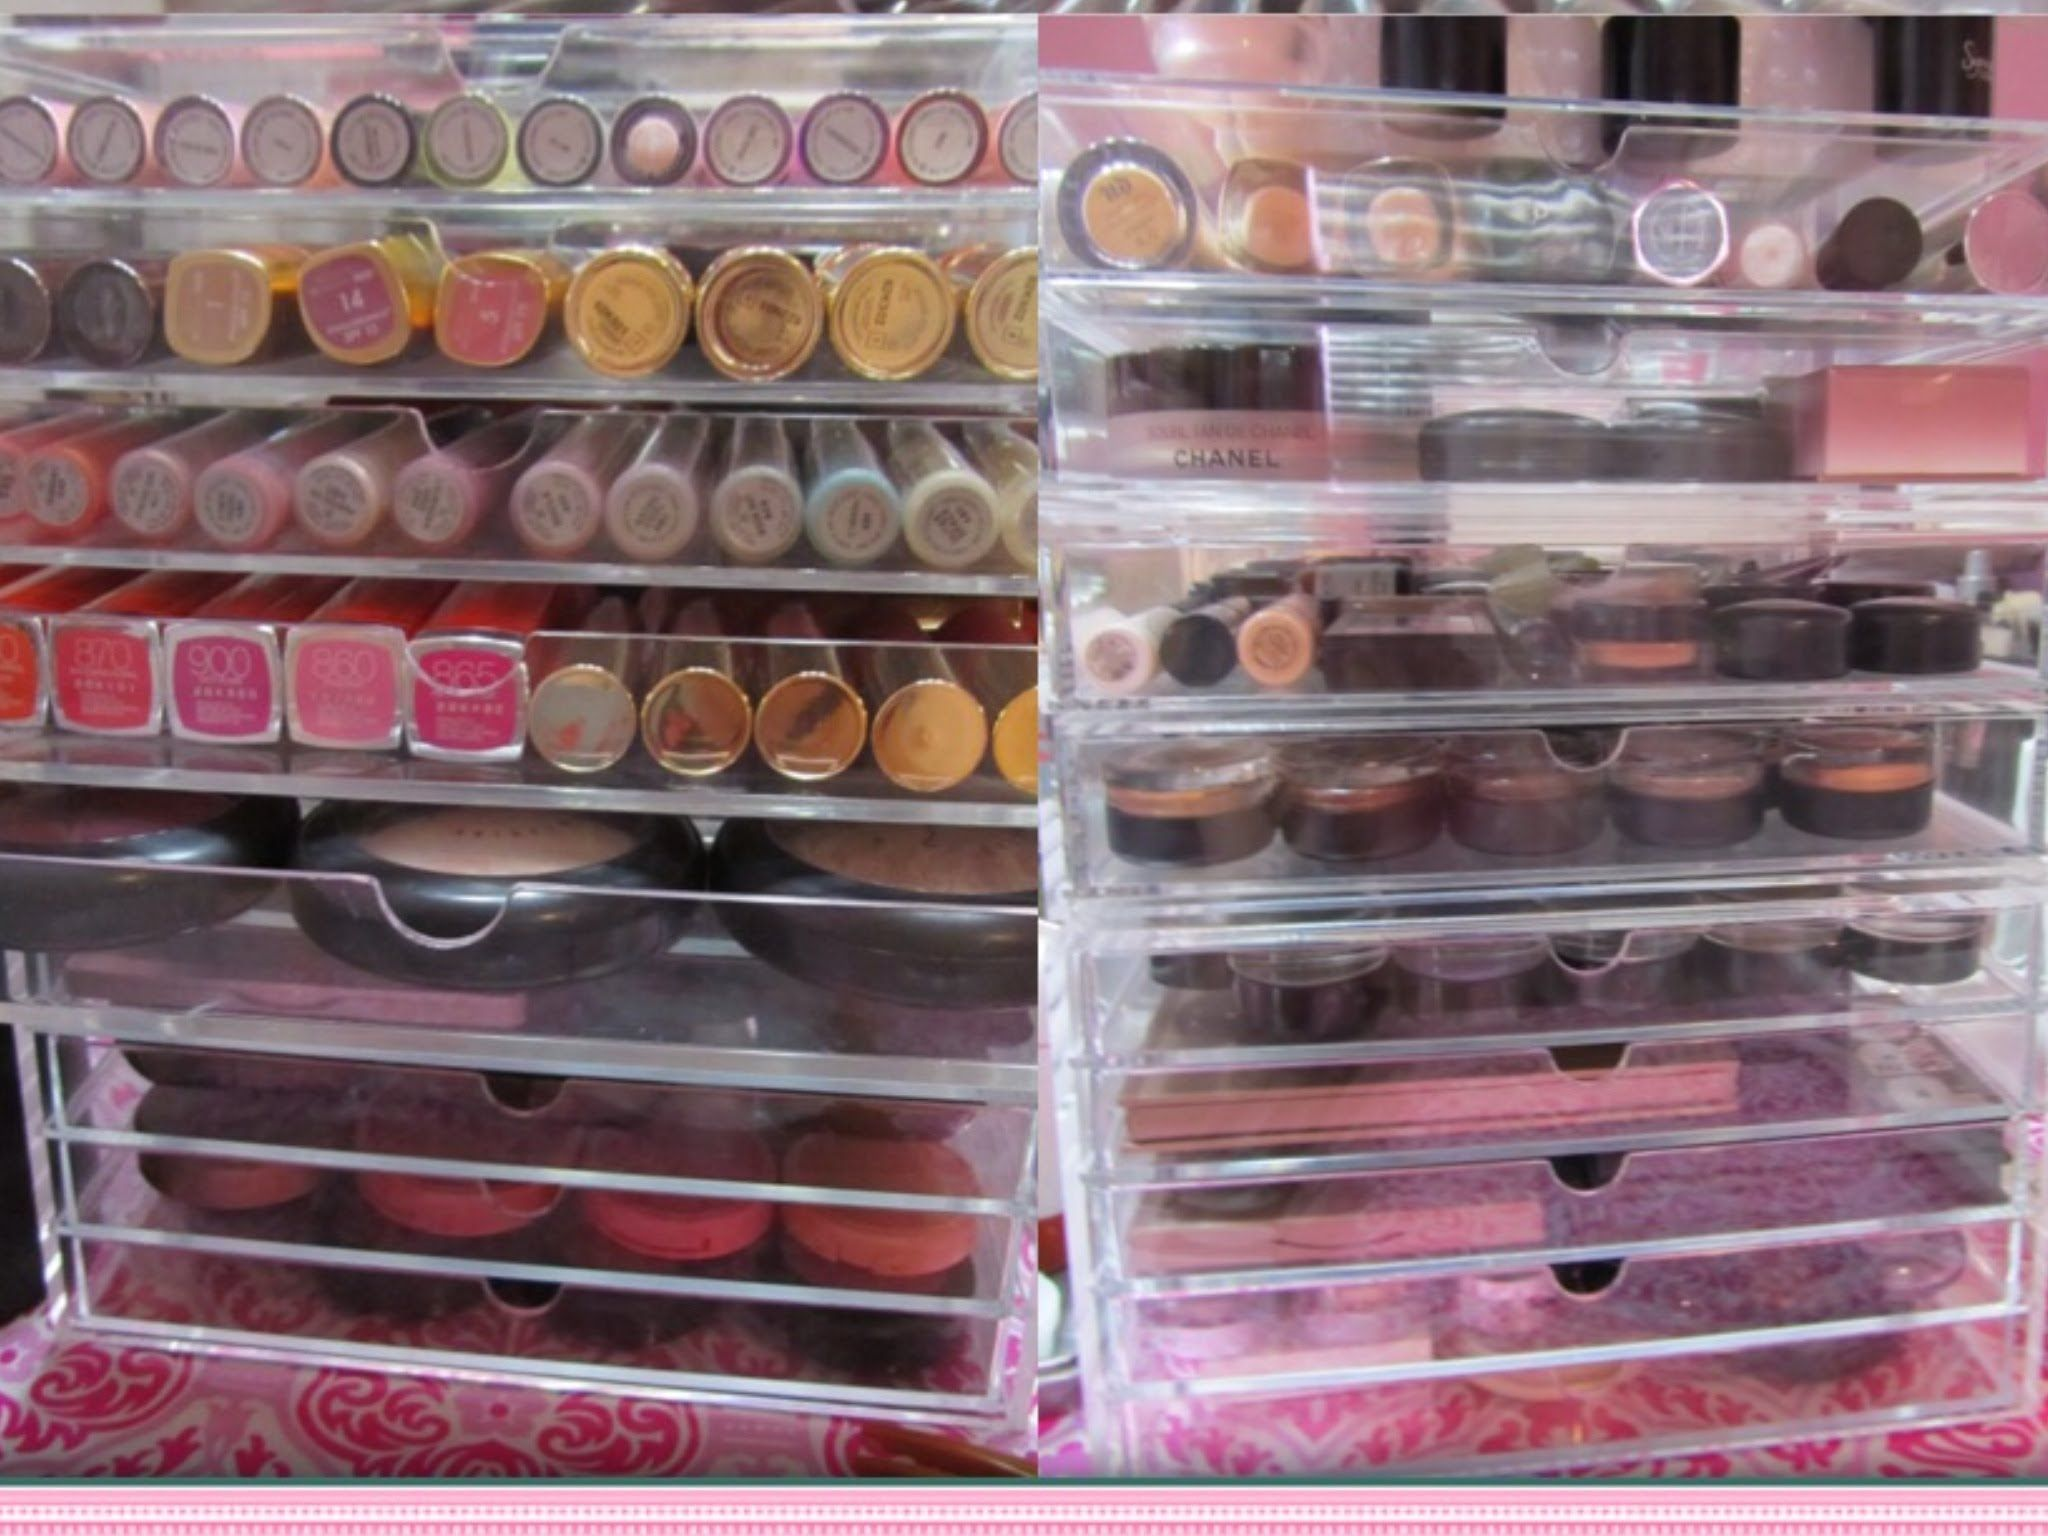 Muji Makeup Organizer Prepossessing My 2015 Makeup Collection And Storage  Makeupjewelry Storage For Inspiration